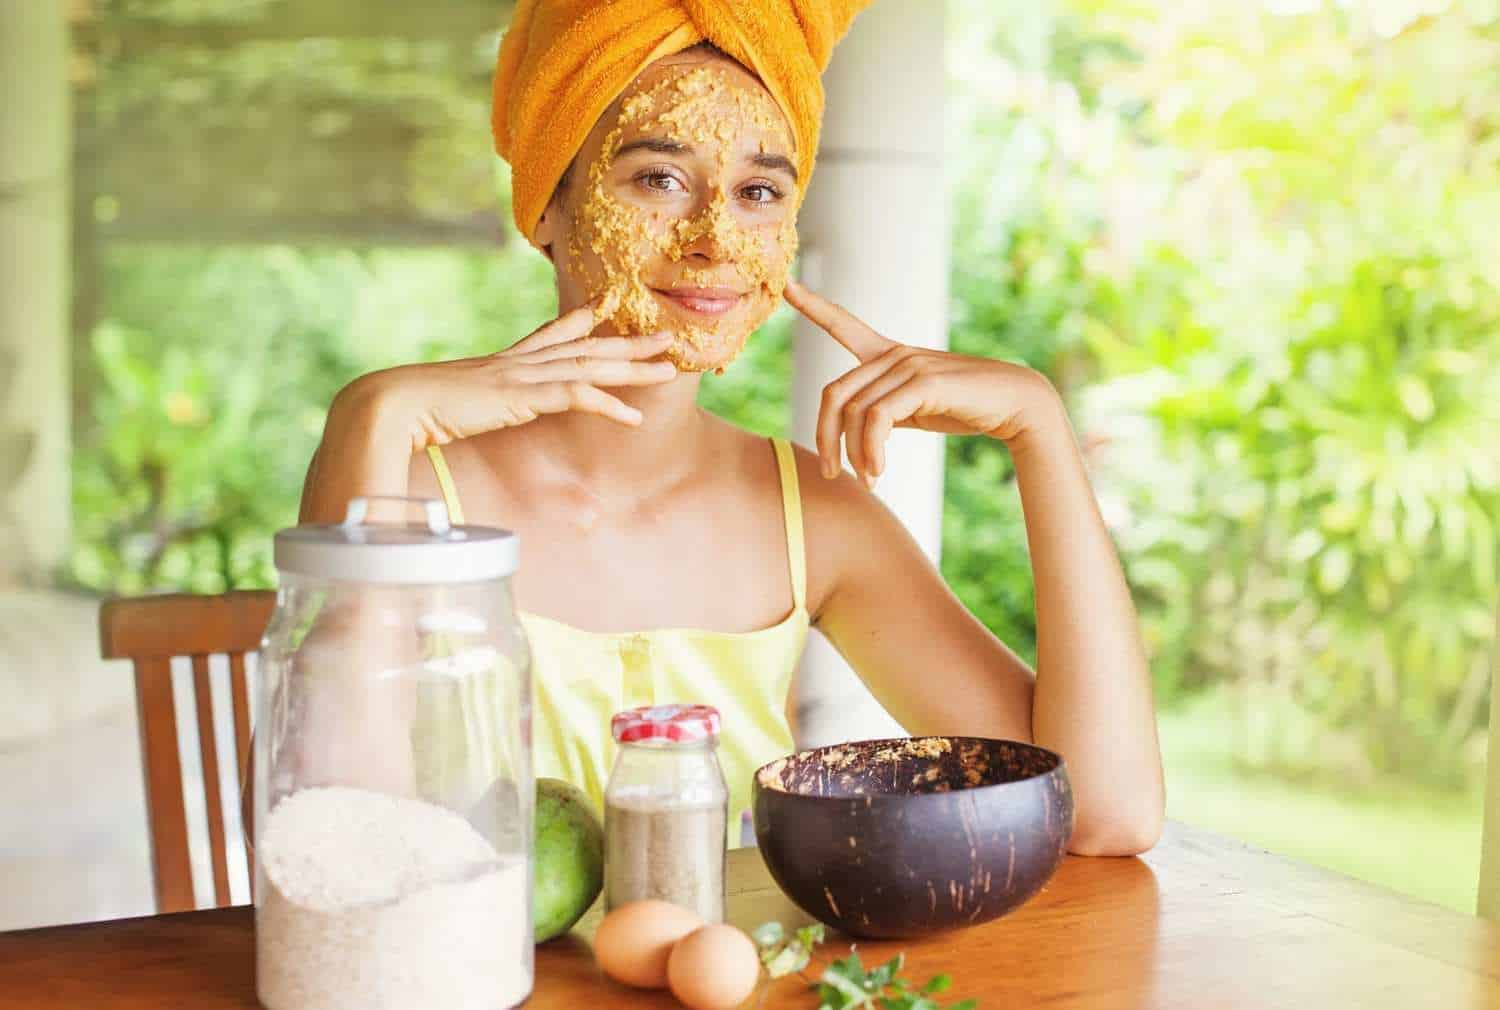 Oatmeal facemask ingredients